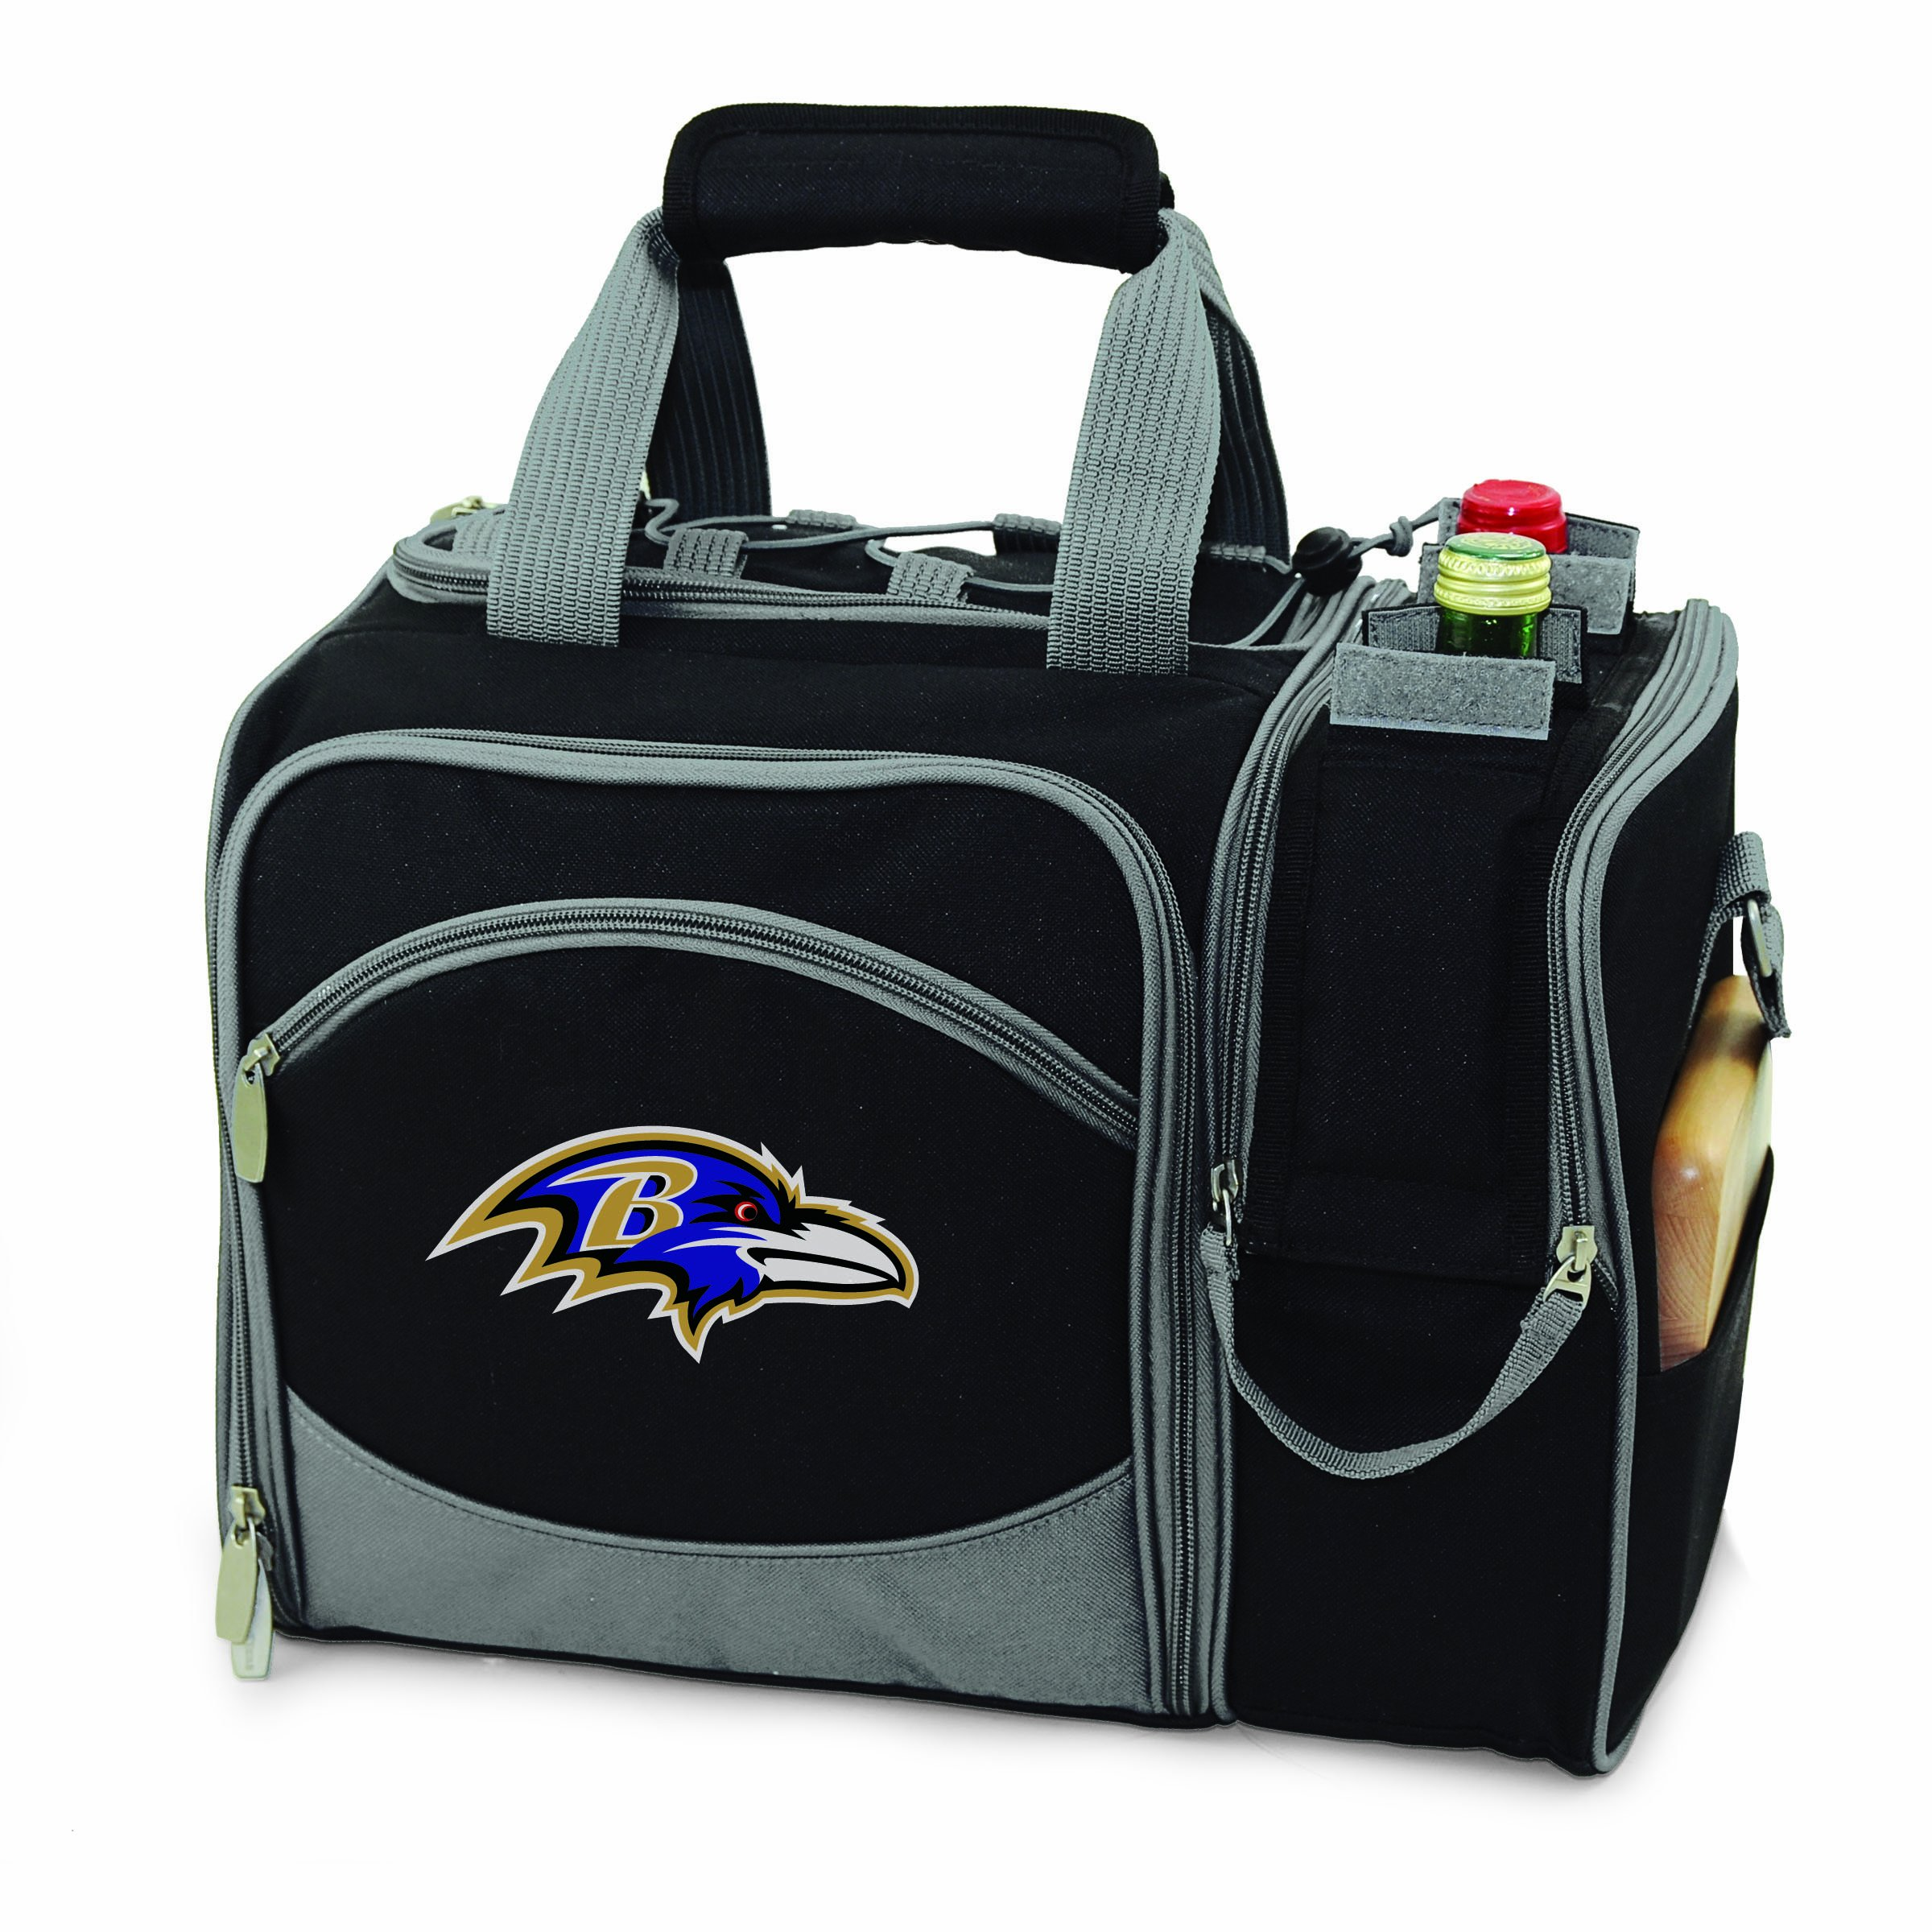 NFL Baltimore Ravens Malibu Insulated Shoulder Pack with Deluxe Picnic Service for Two